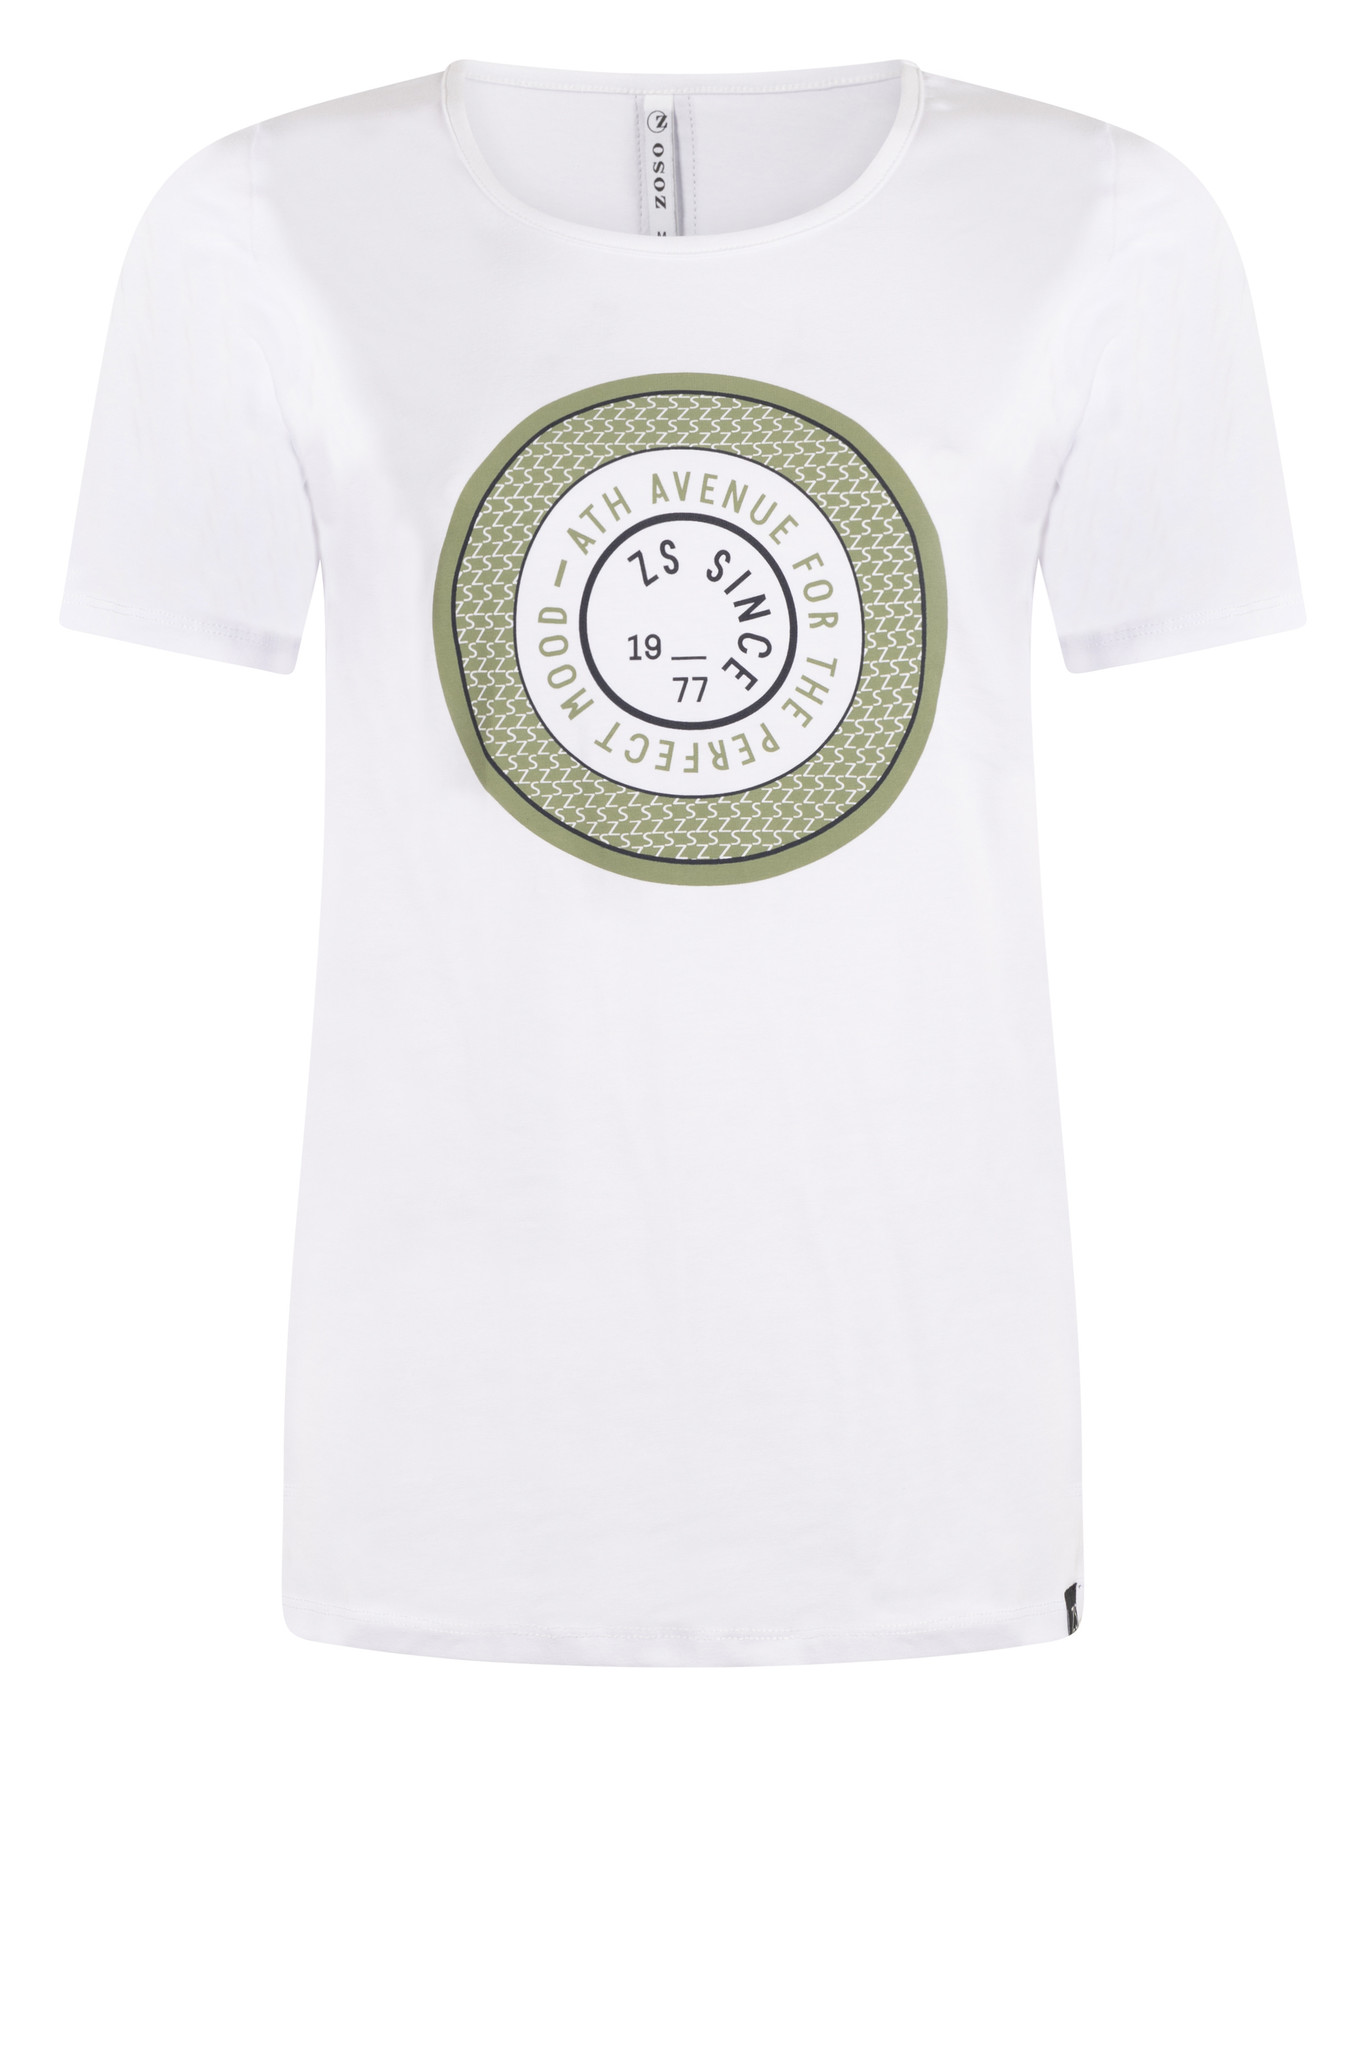 Zoso Zoso Lenny T-shirt white/green